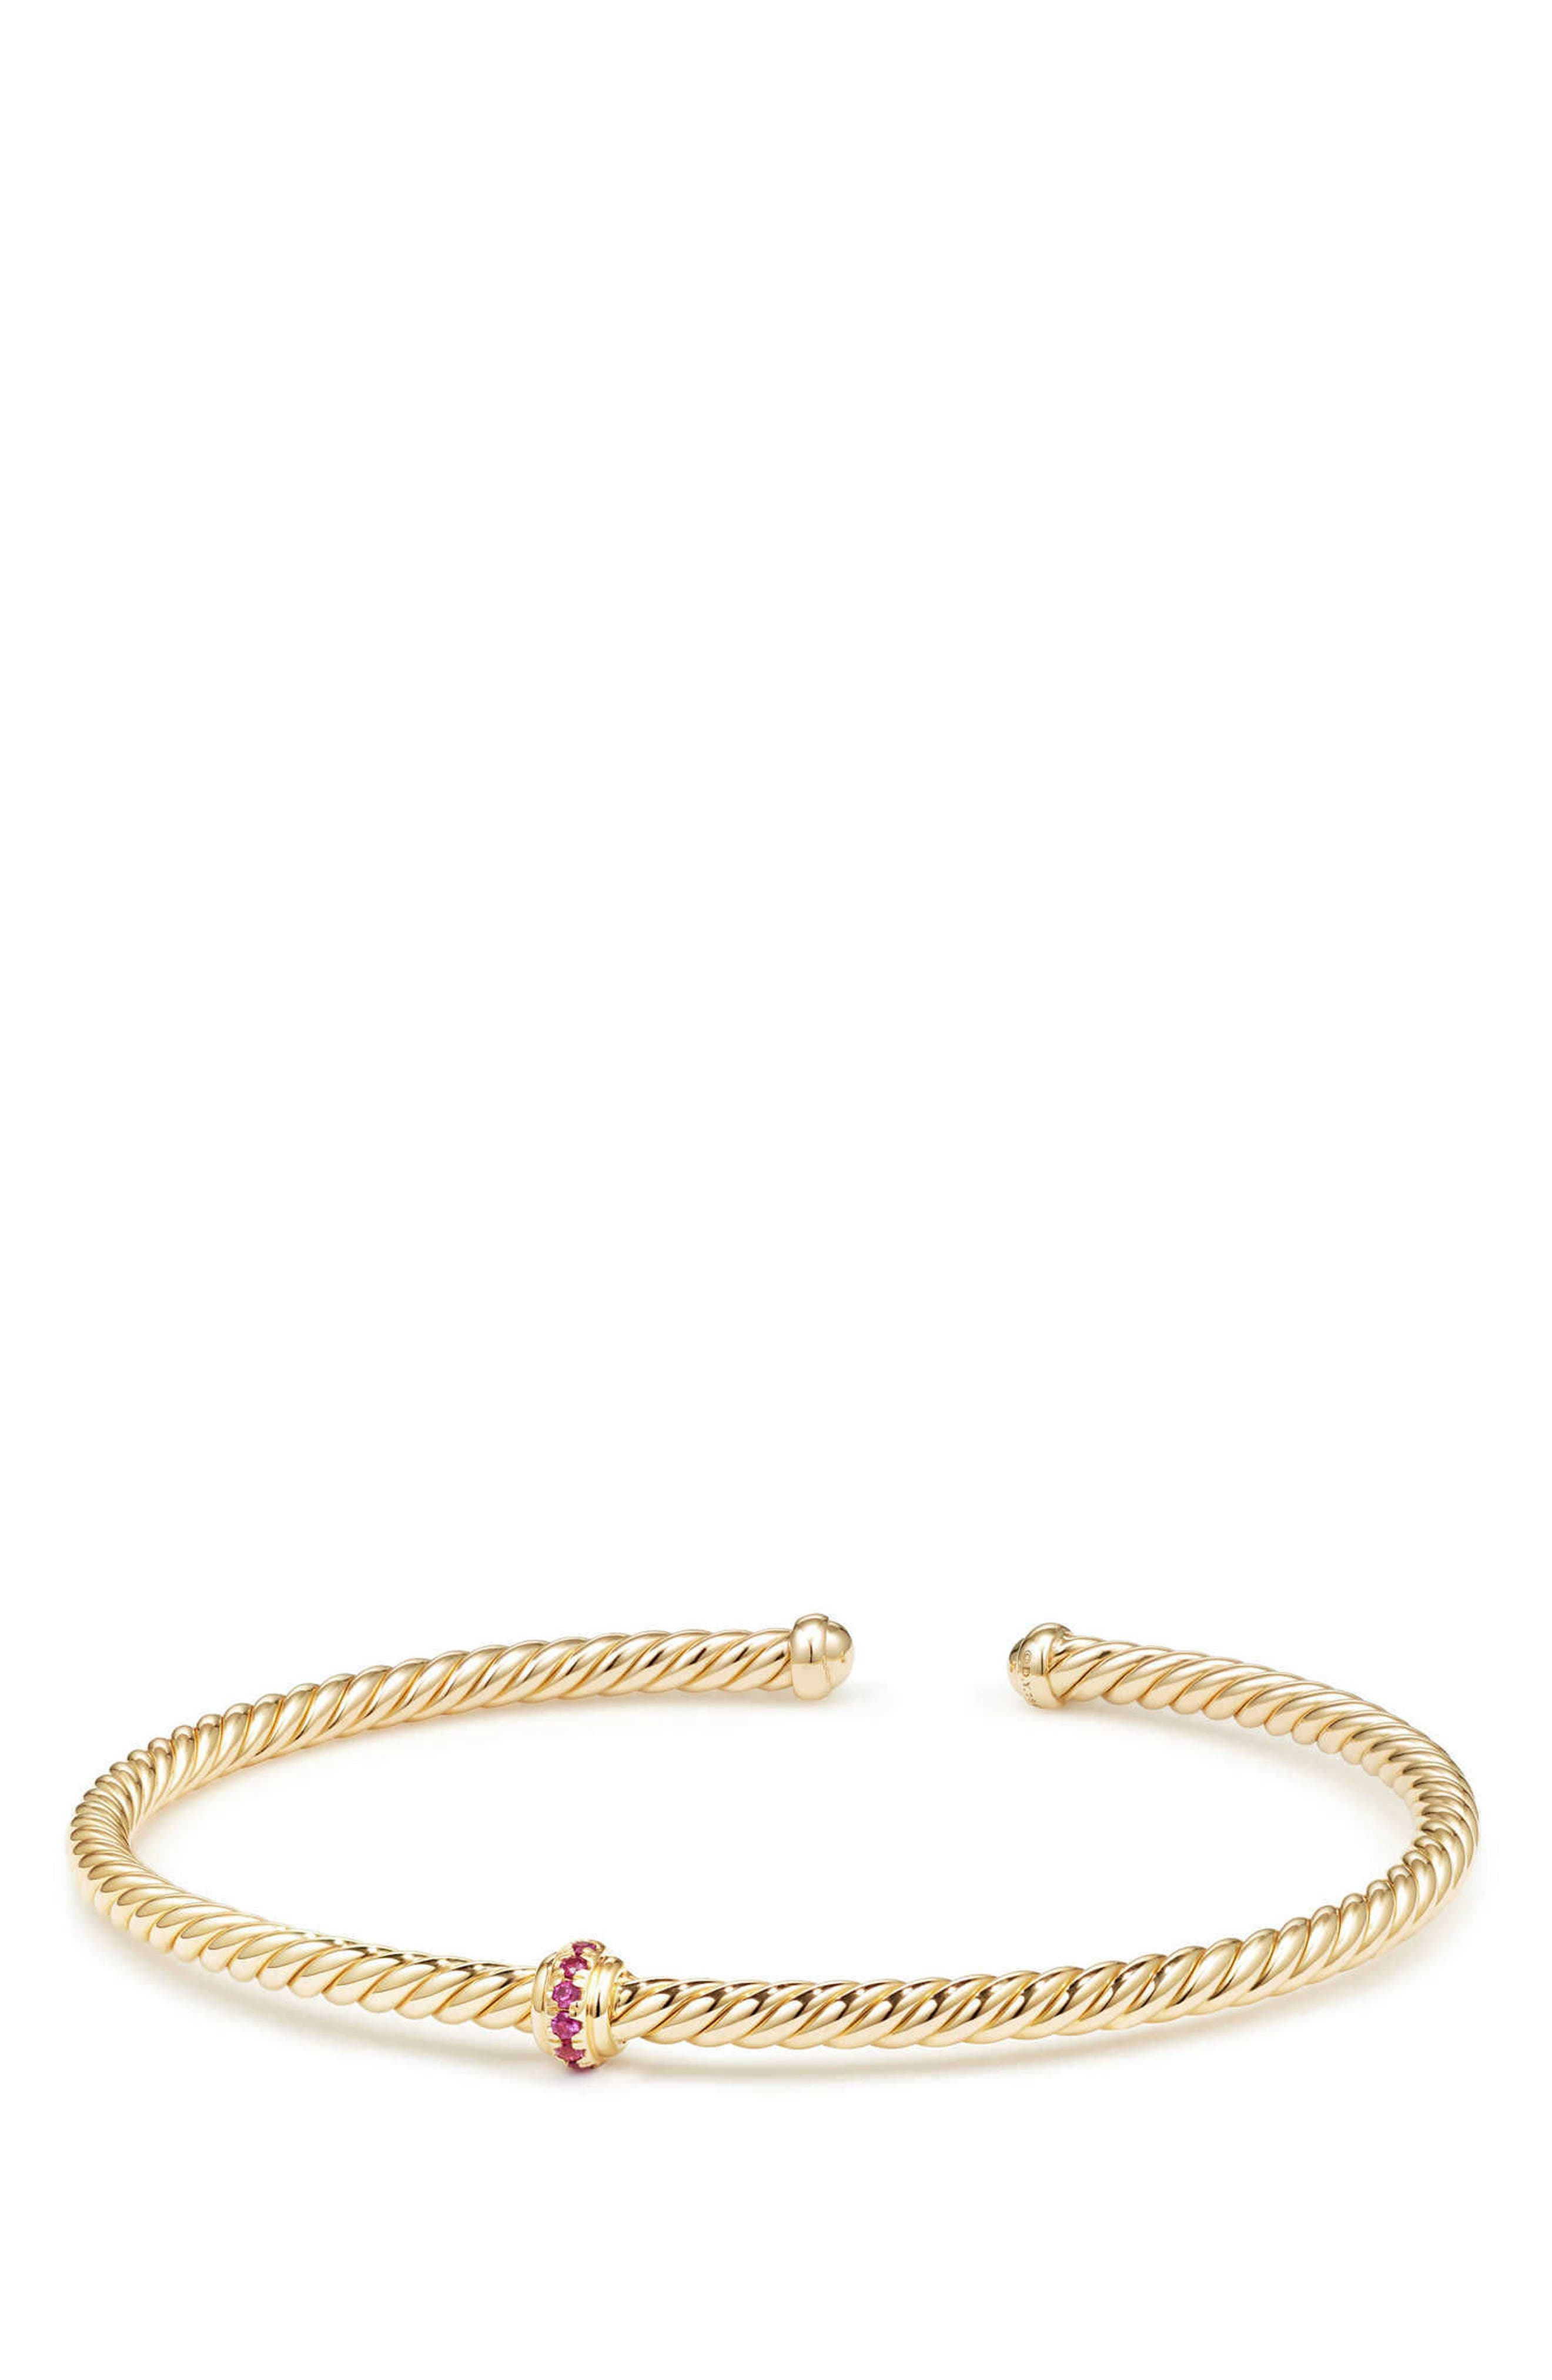 DAVID YURMAN, Renaissance Center Station Bracelet with Diamonds in 18K Gold, 3mm, Main thumbnail 1, color, GOLD/ RUBY